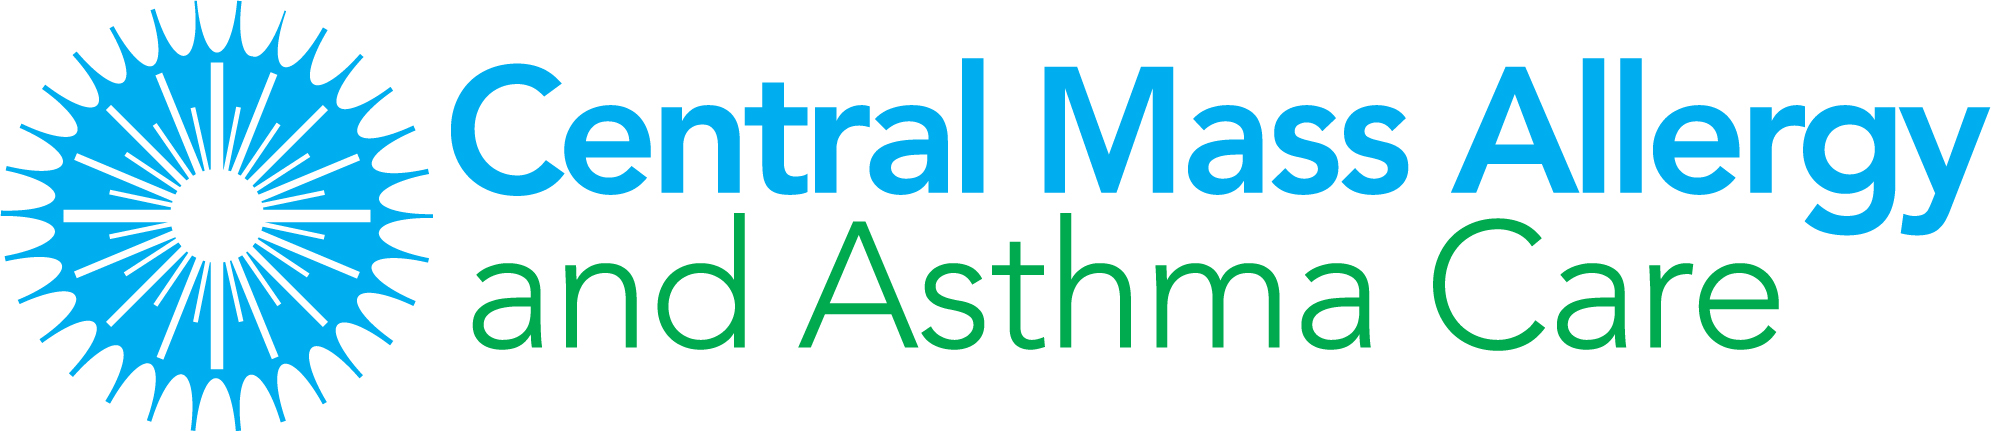 Central Mass Asthma and Allergy